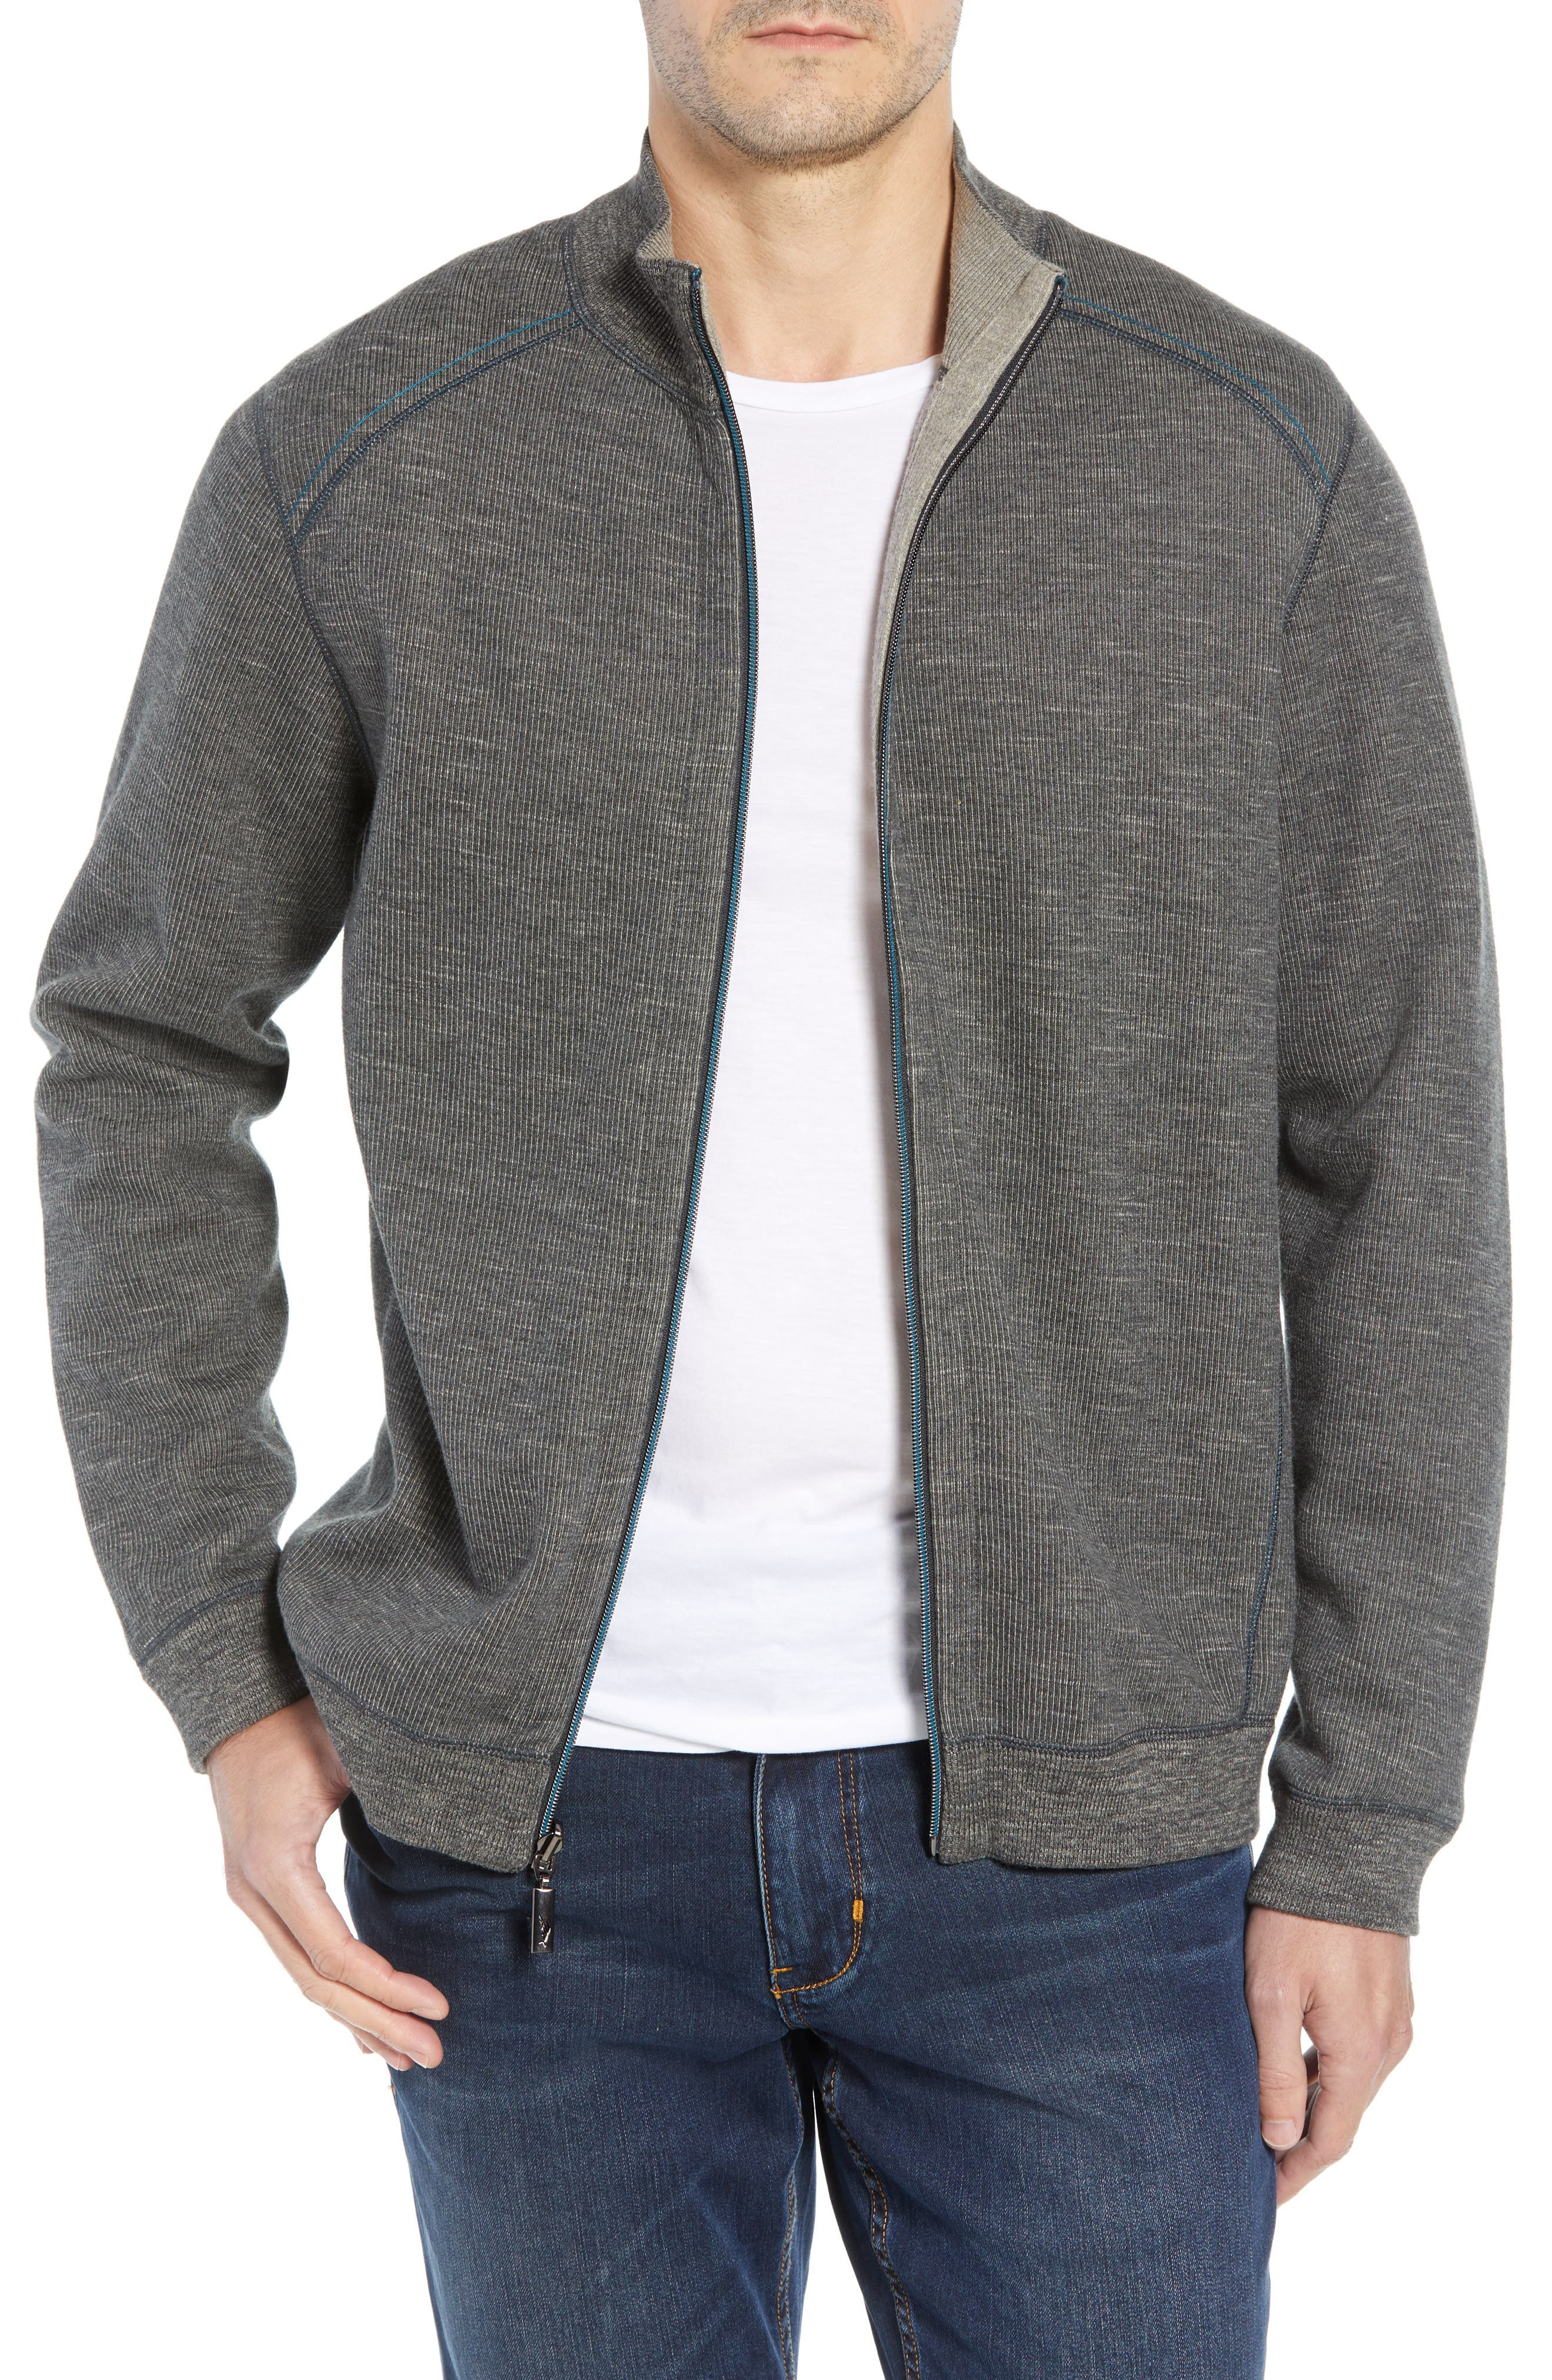 Flipsider Reversible Jacket,                             Main thumbnail 1, color,                             ONYX HEATHER